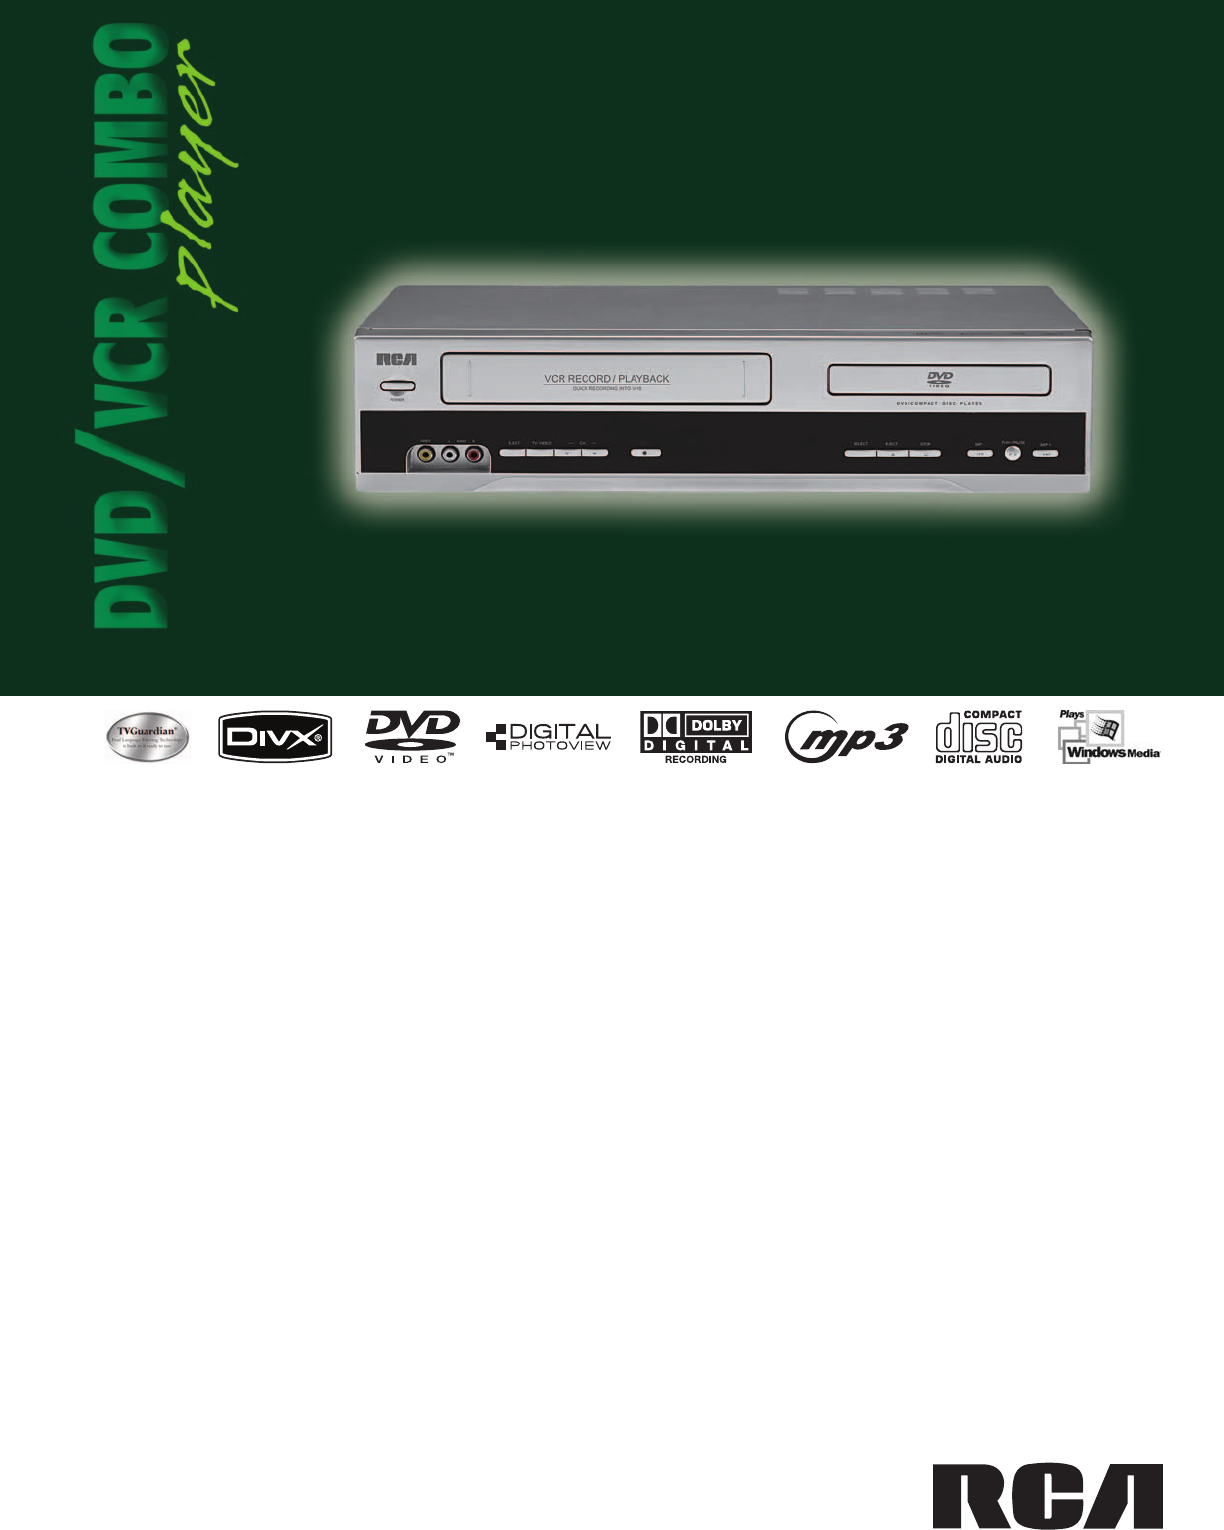 rca dvd vcr combo drc6355n user guide manualsonline com rh tv manualsonline com Sharp TV VCR Sharp VCR Owner's Manual